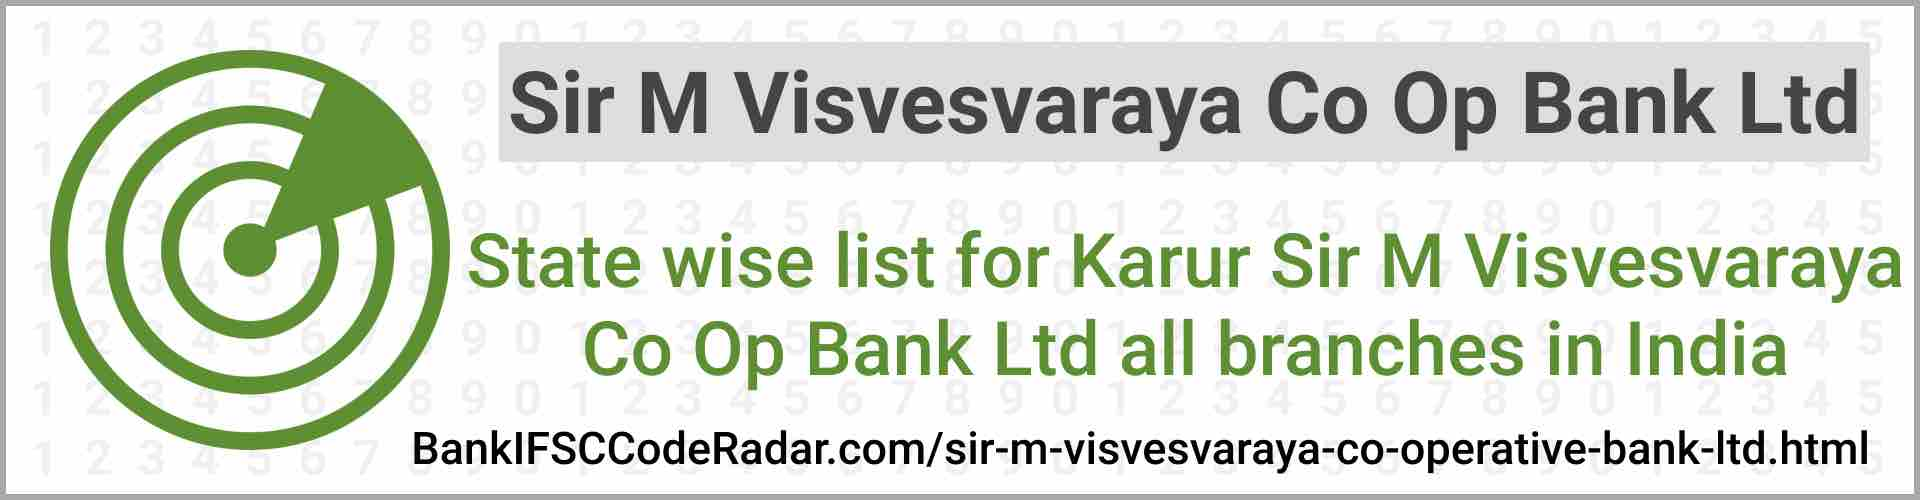 Sir M Visvesvaraya Co Operative Bank Ltd All Branches India